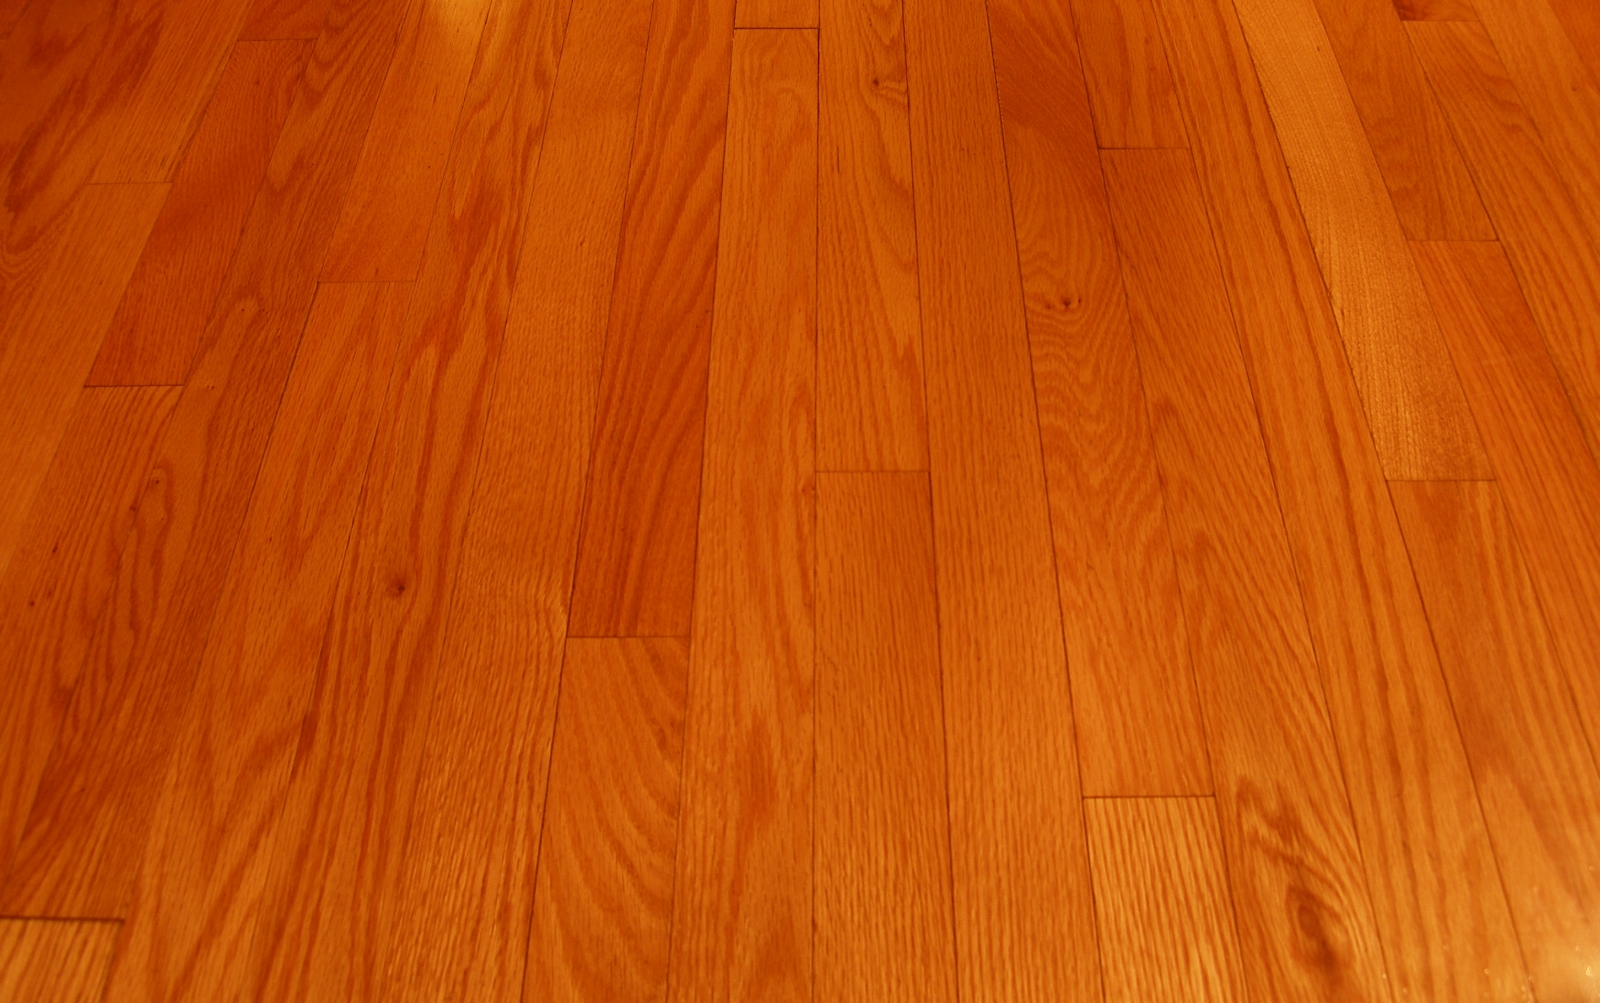 Unique wood floors choosing between solid vs engineered for Floating hardwood floor